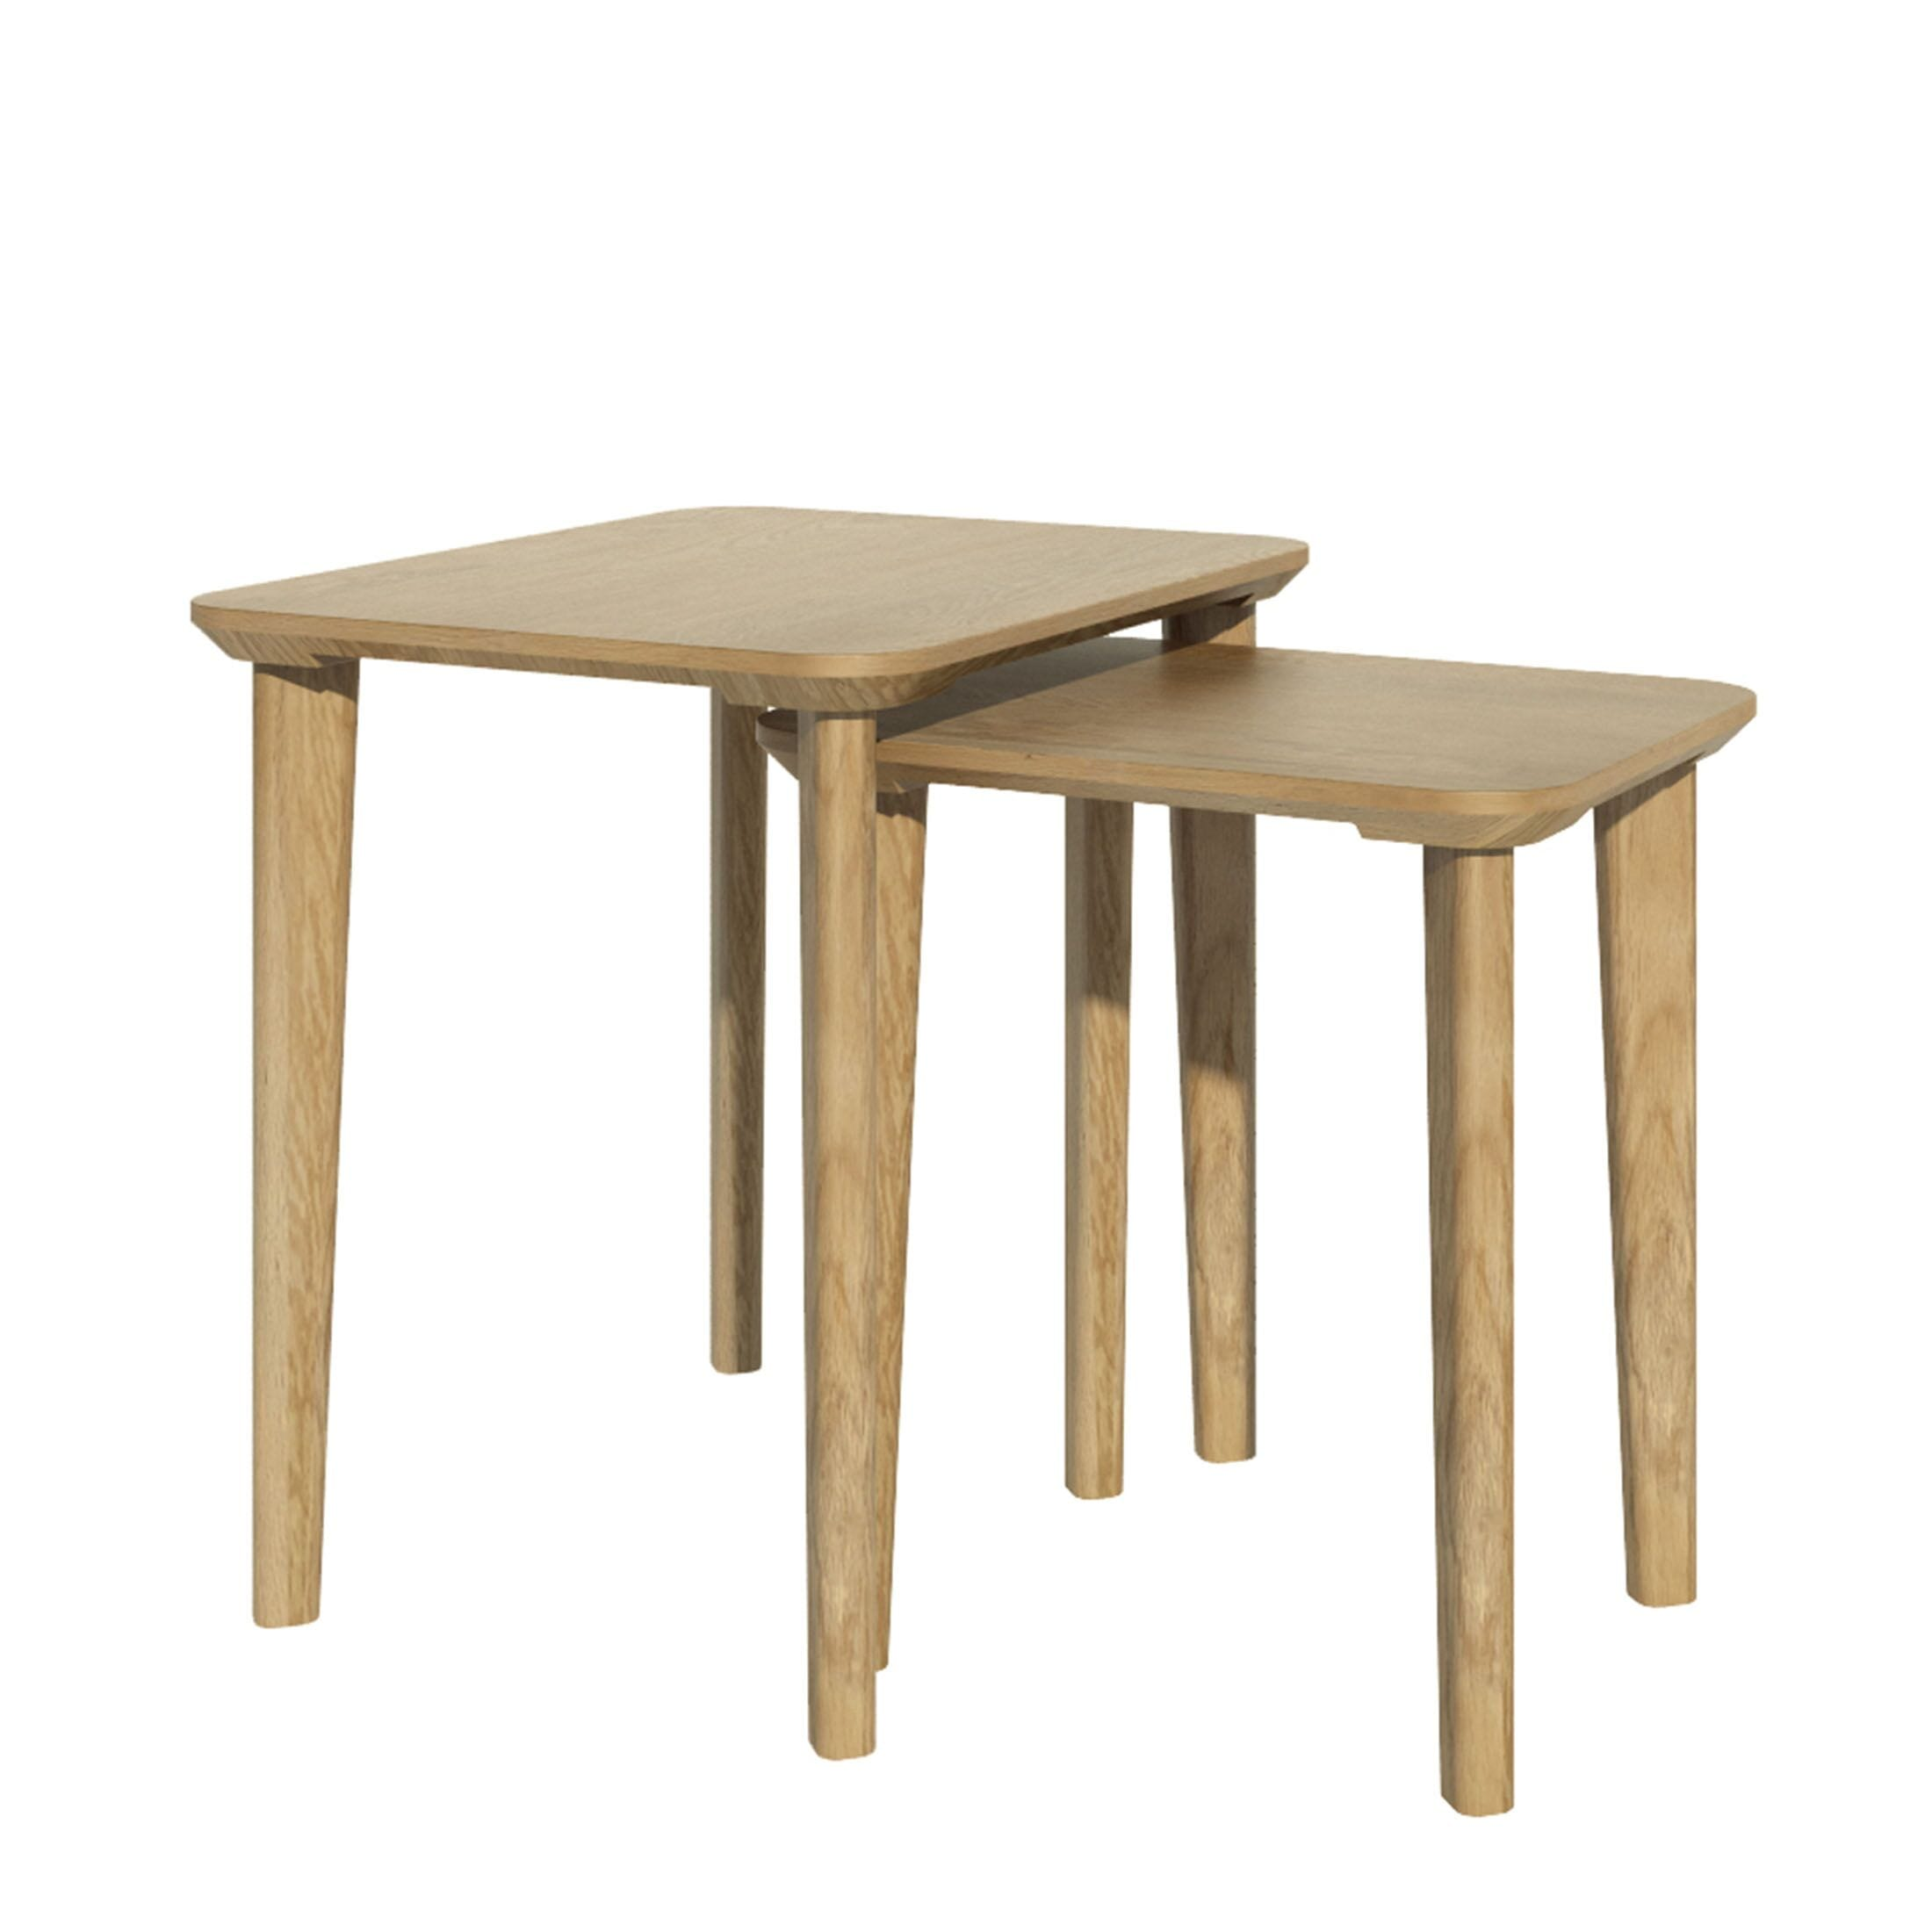 SCANNEST Scandic Rect Nest of tables